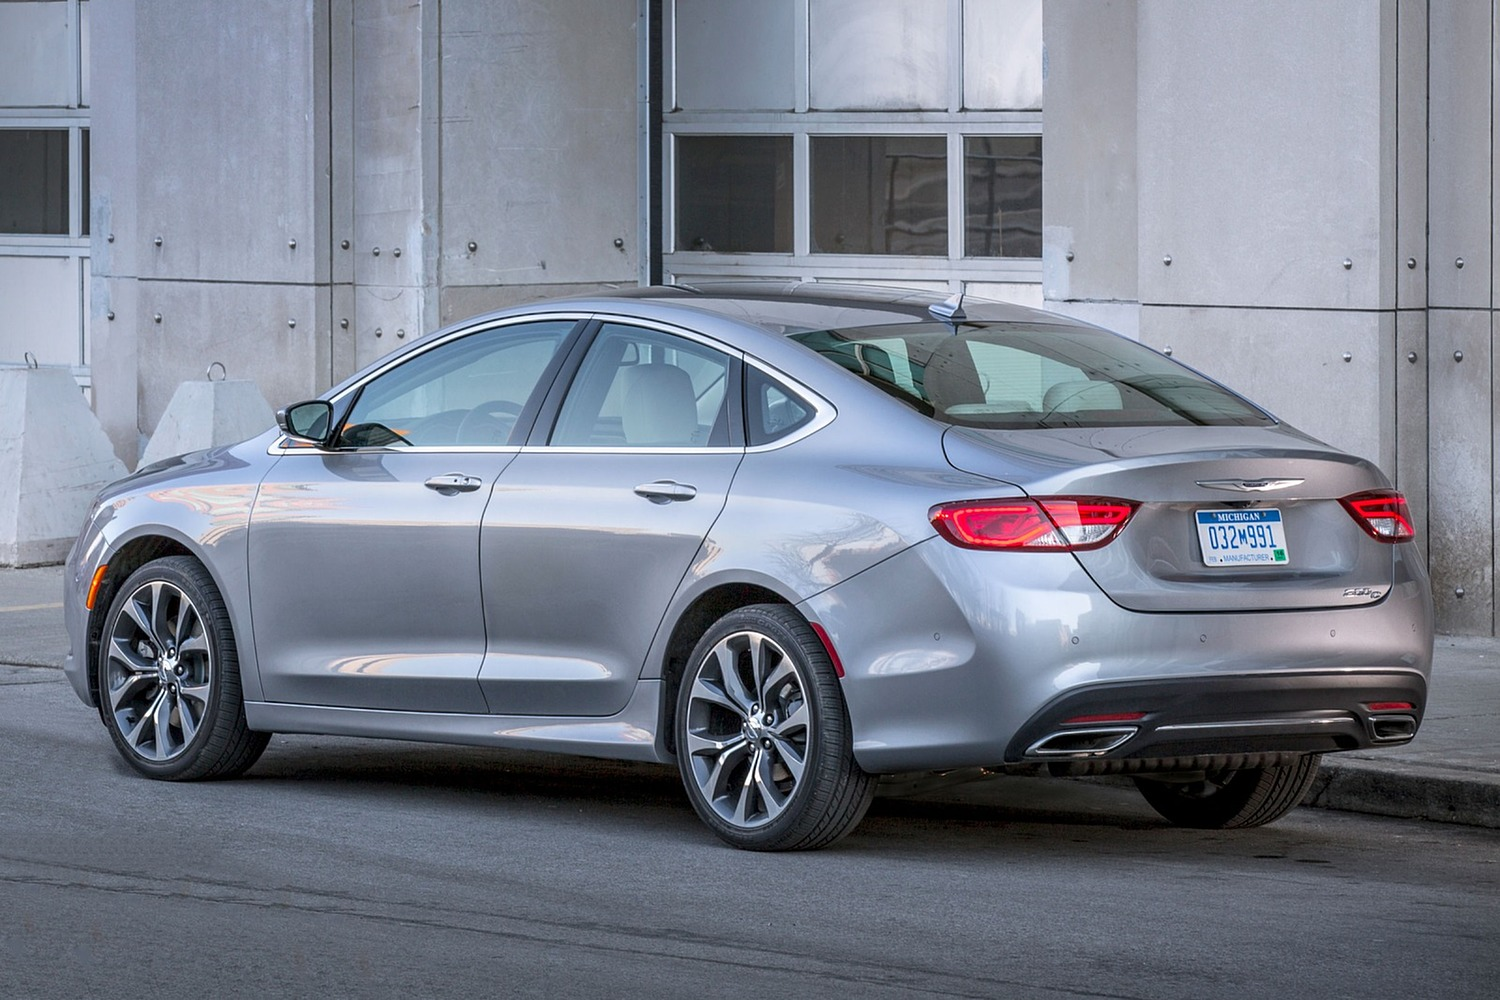 2016 Chrysler 200 C Sedan Exterior